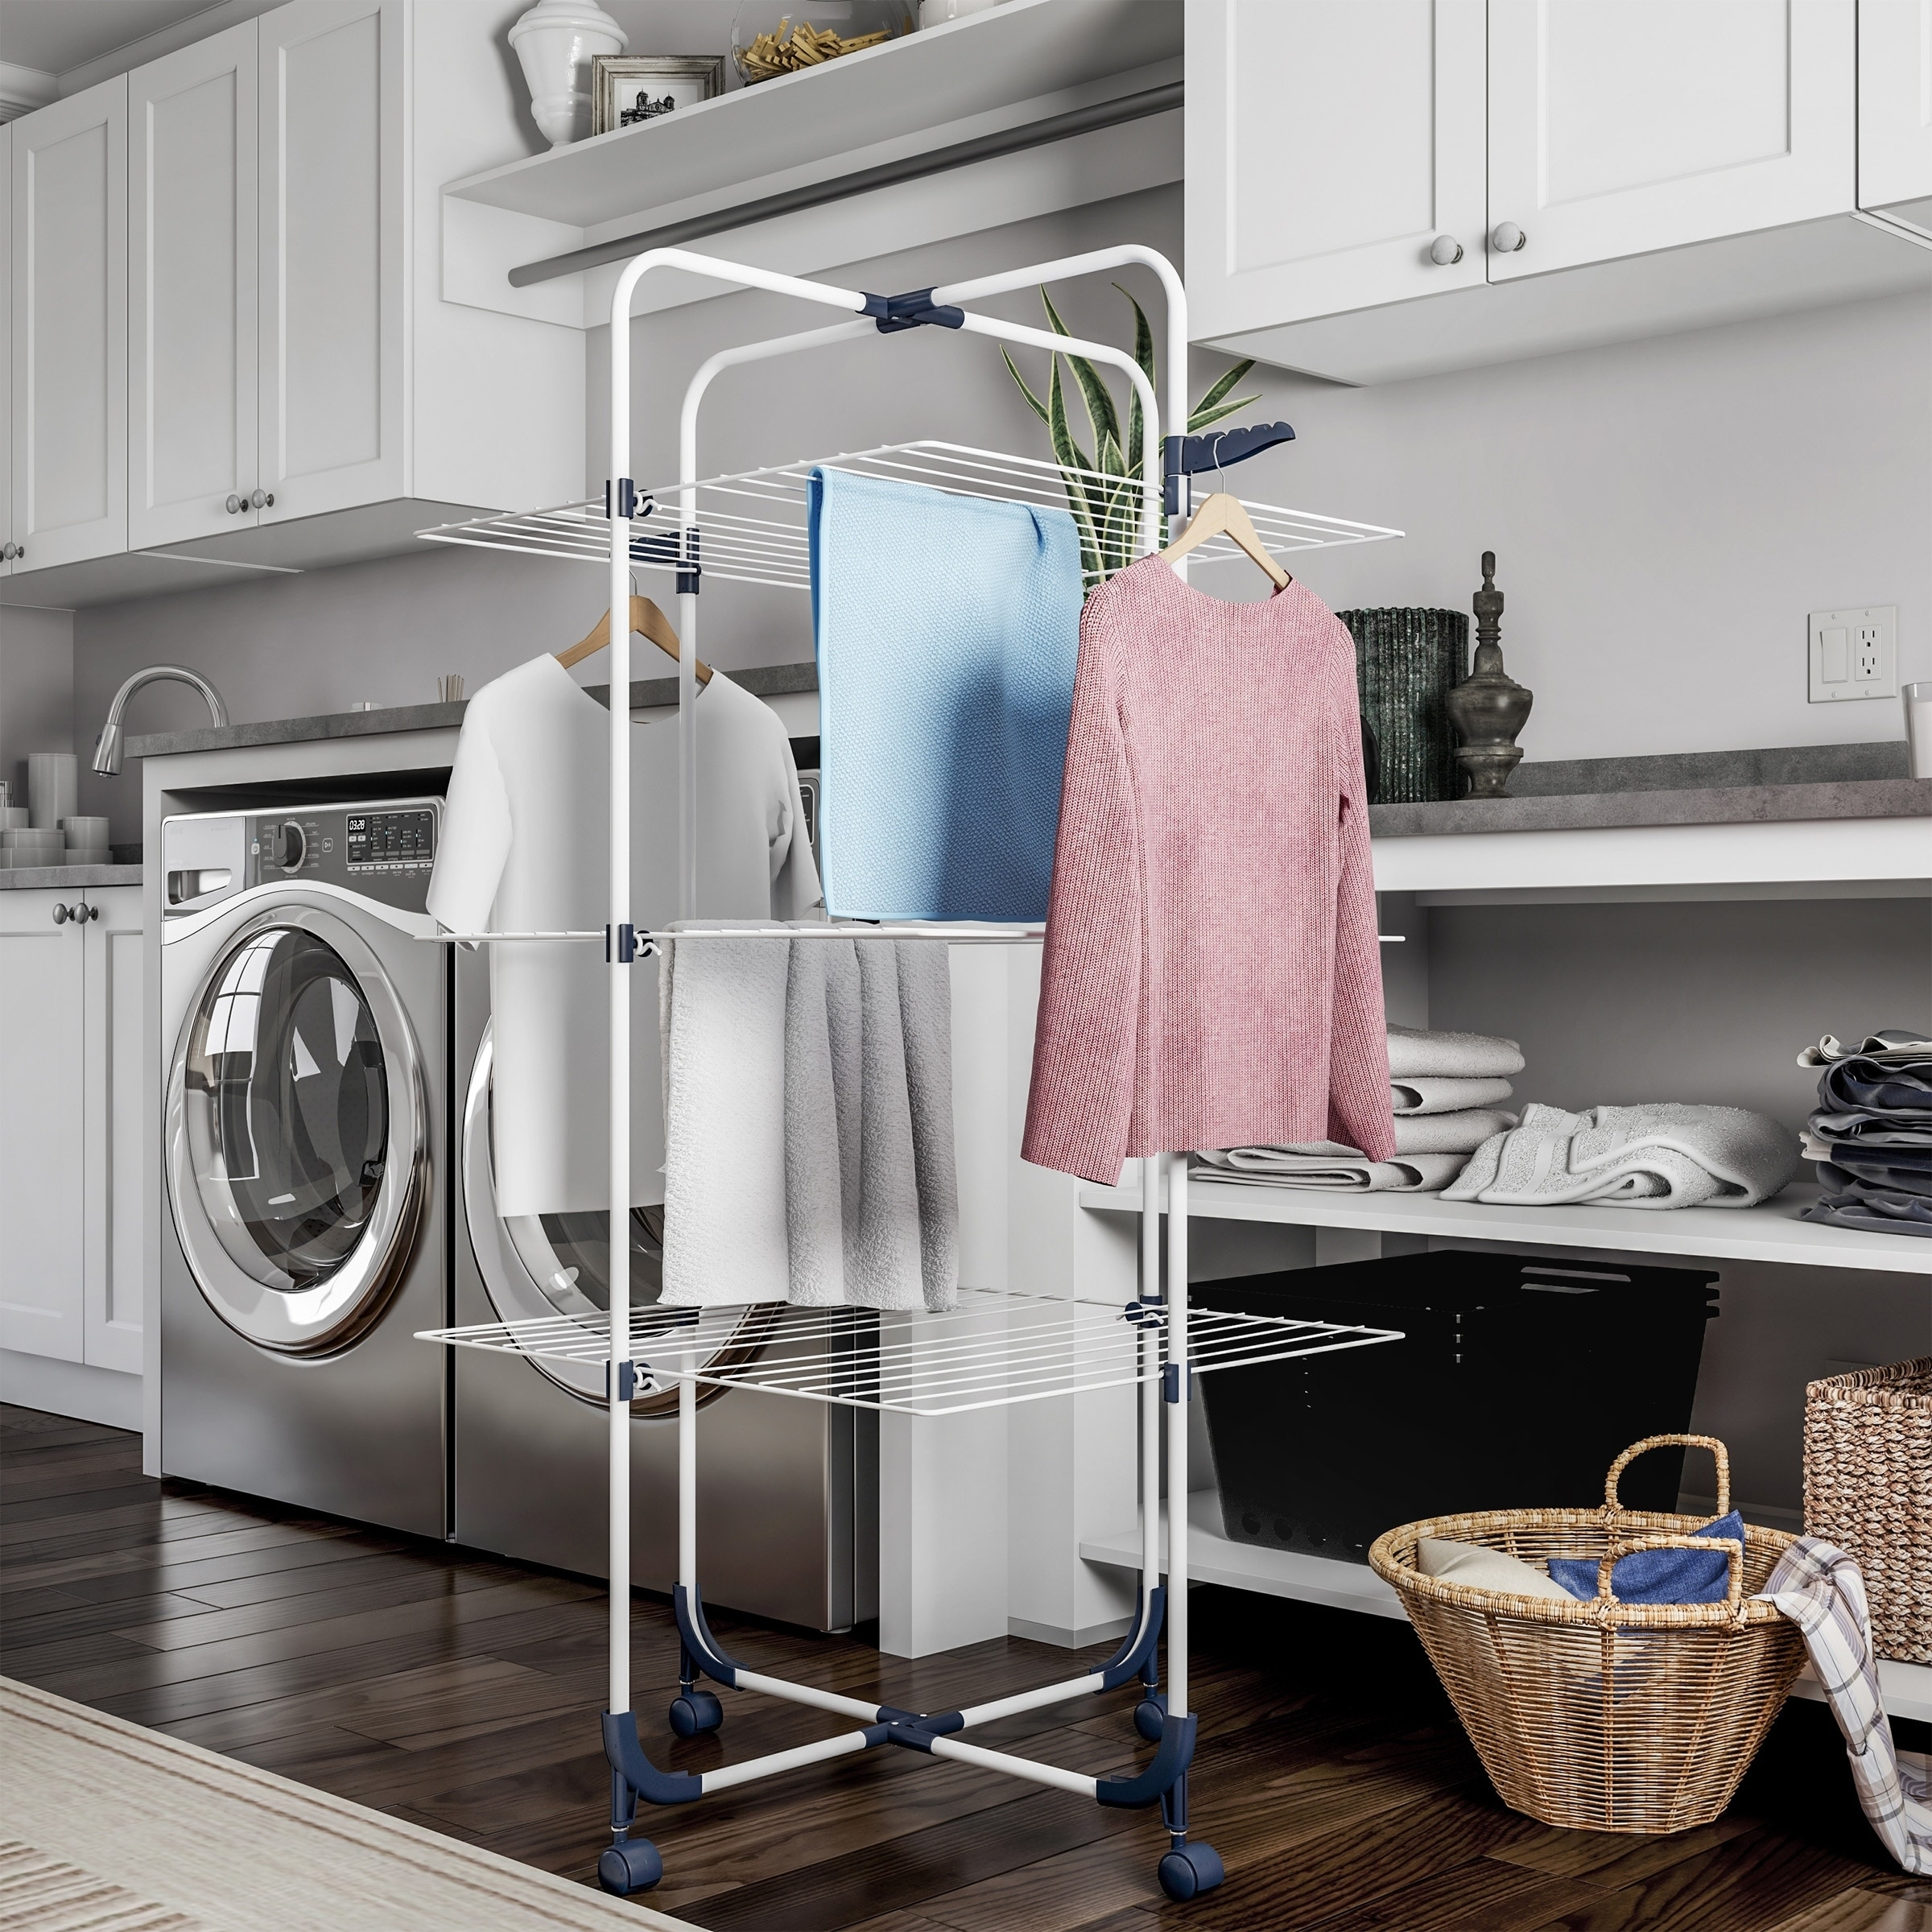 Shop Tiered Laundry Station With Collapsible Shelves And Wheels For Folding Sorting And Air Drying By Lavish Home On Sale Overstock 26960130